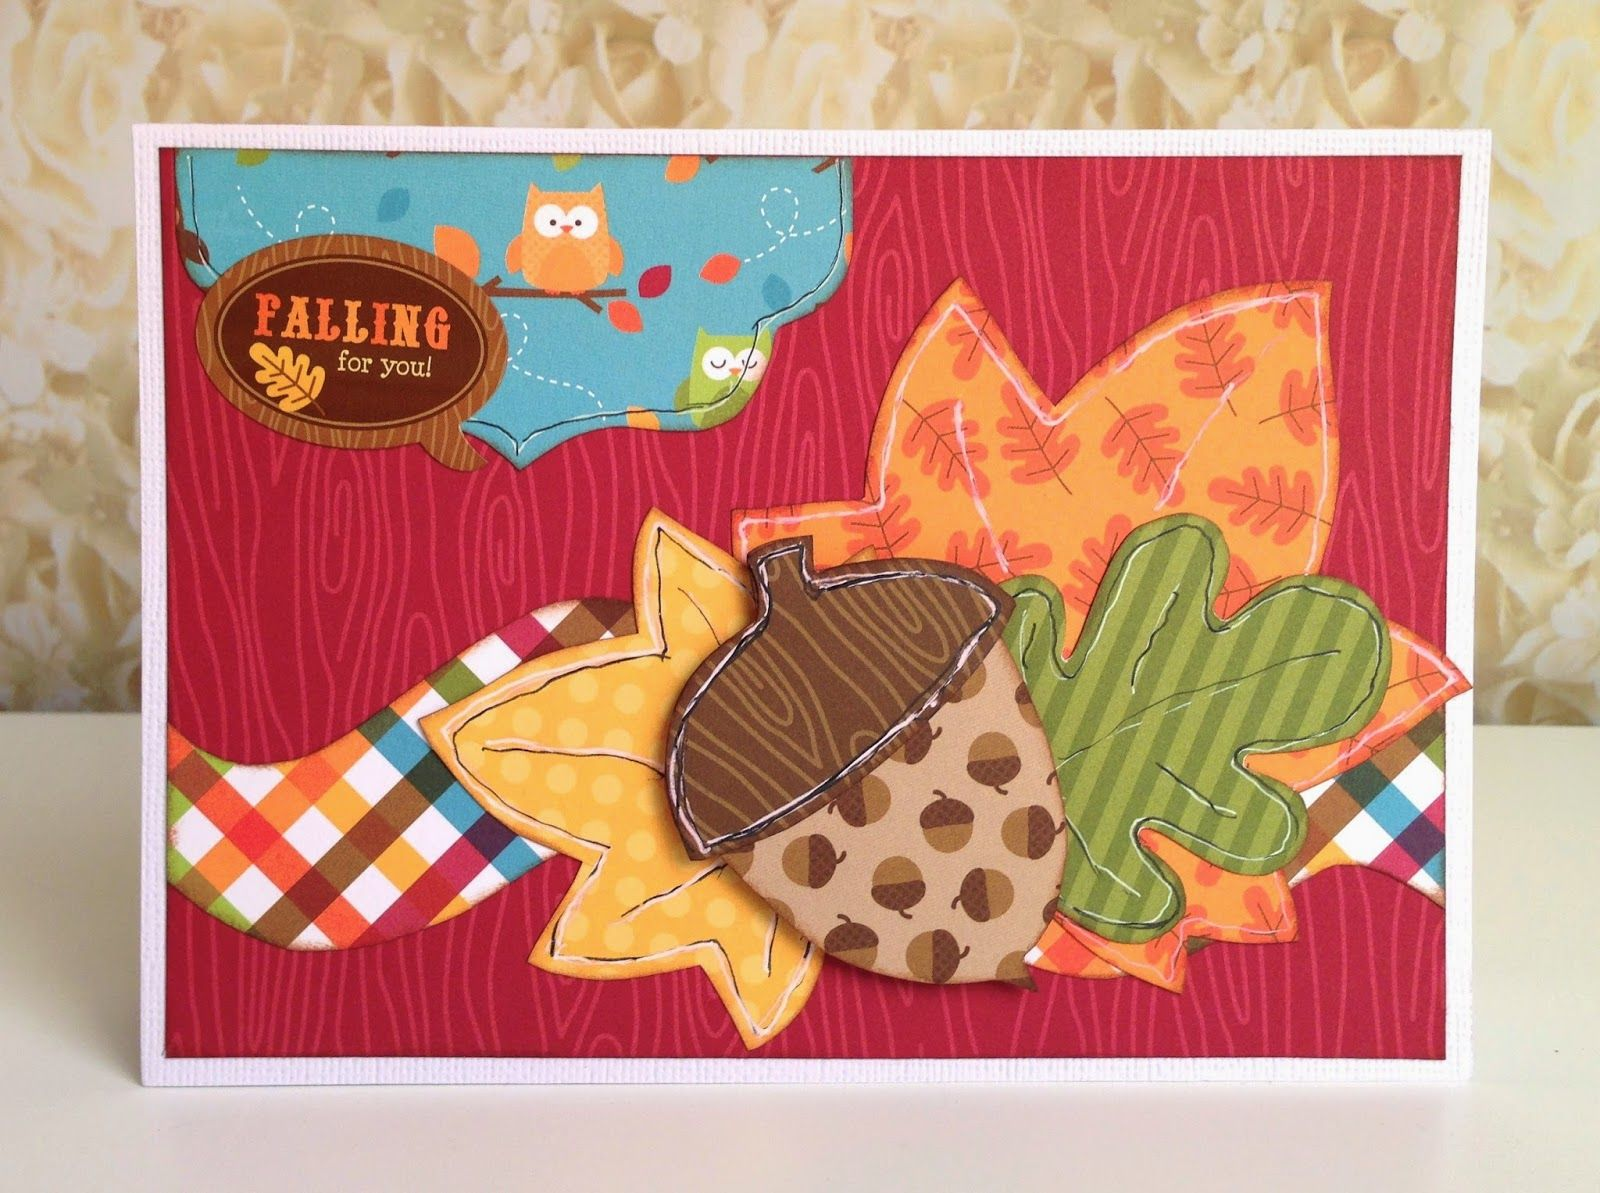 Falling for you card by Gail Owens for Kiwi Lane using @kiwilane templates and Doodlebug Designs paper